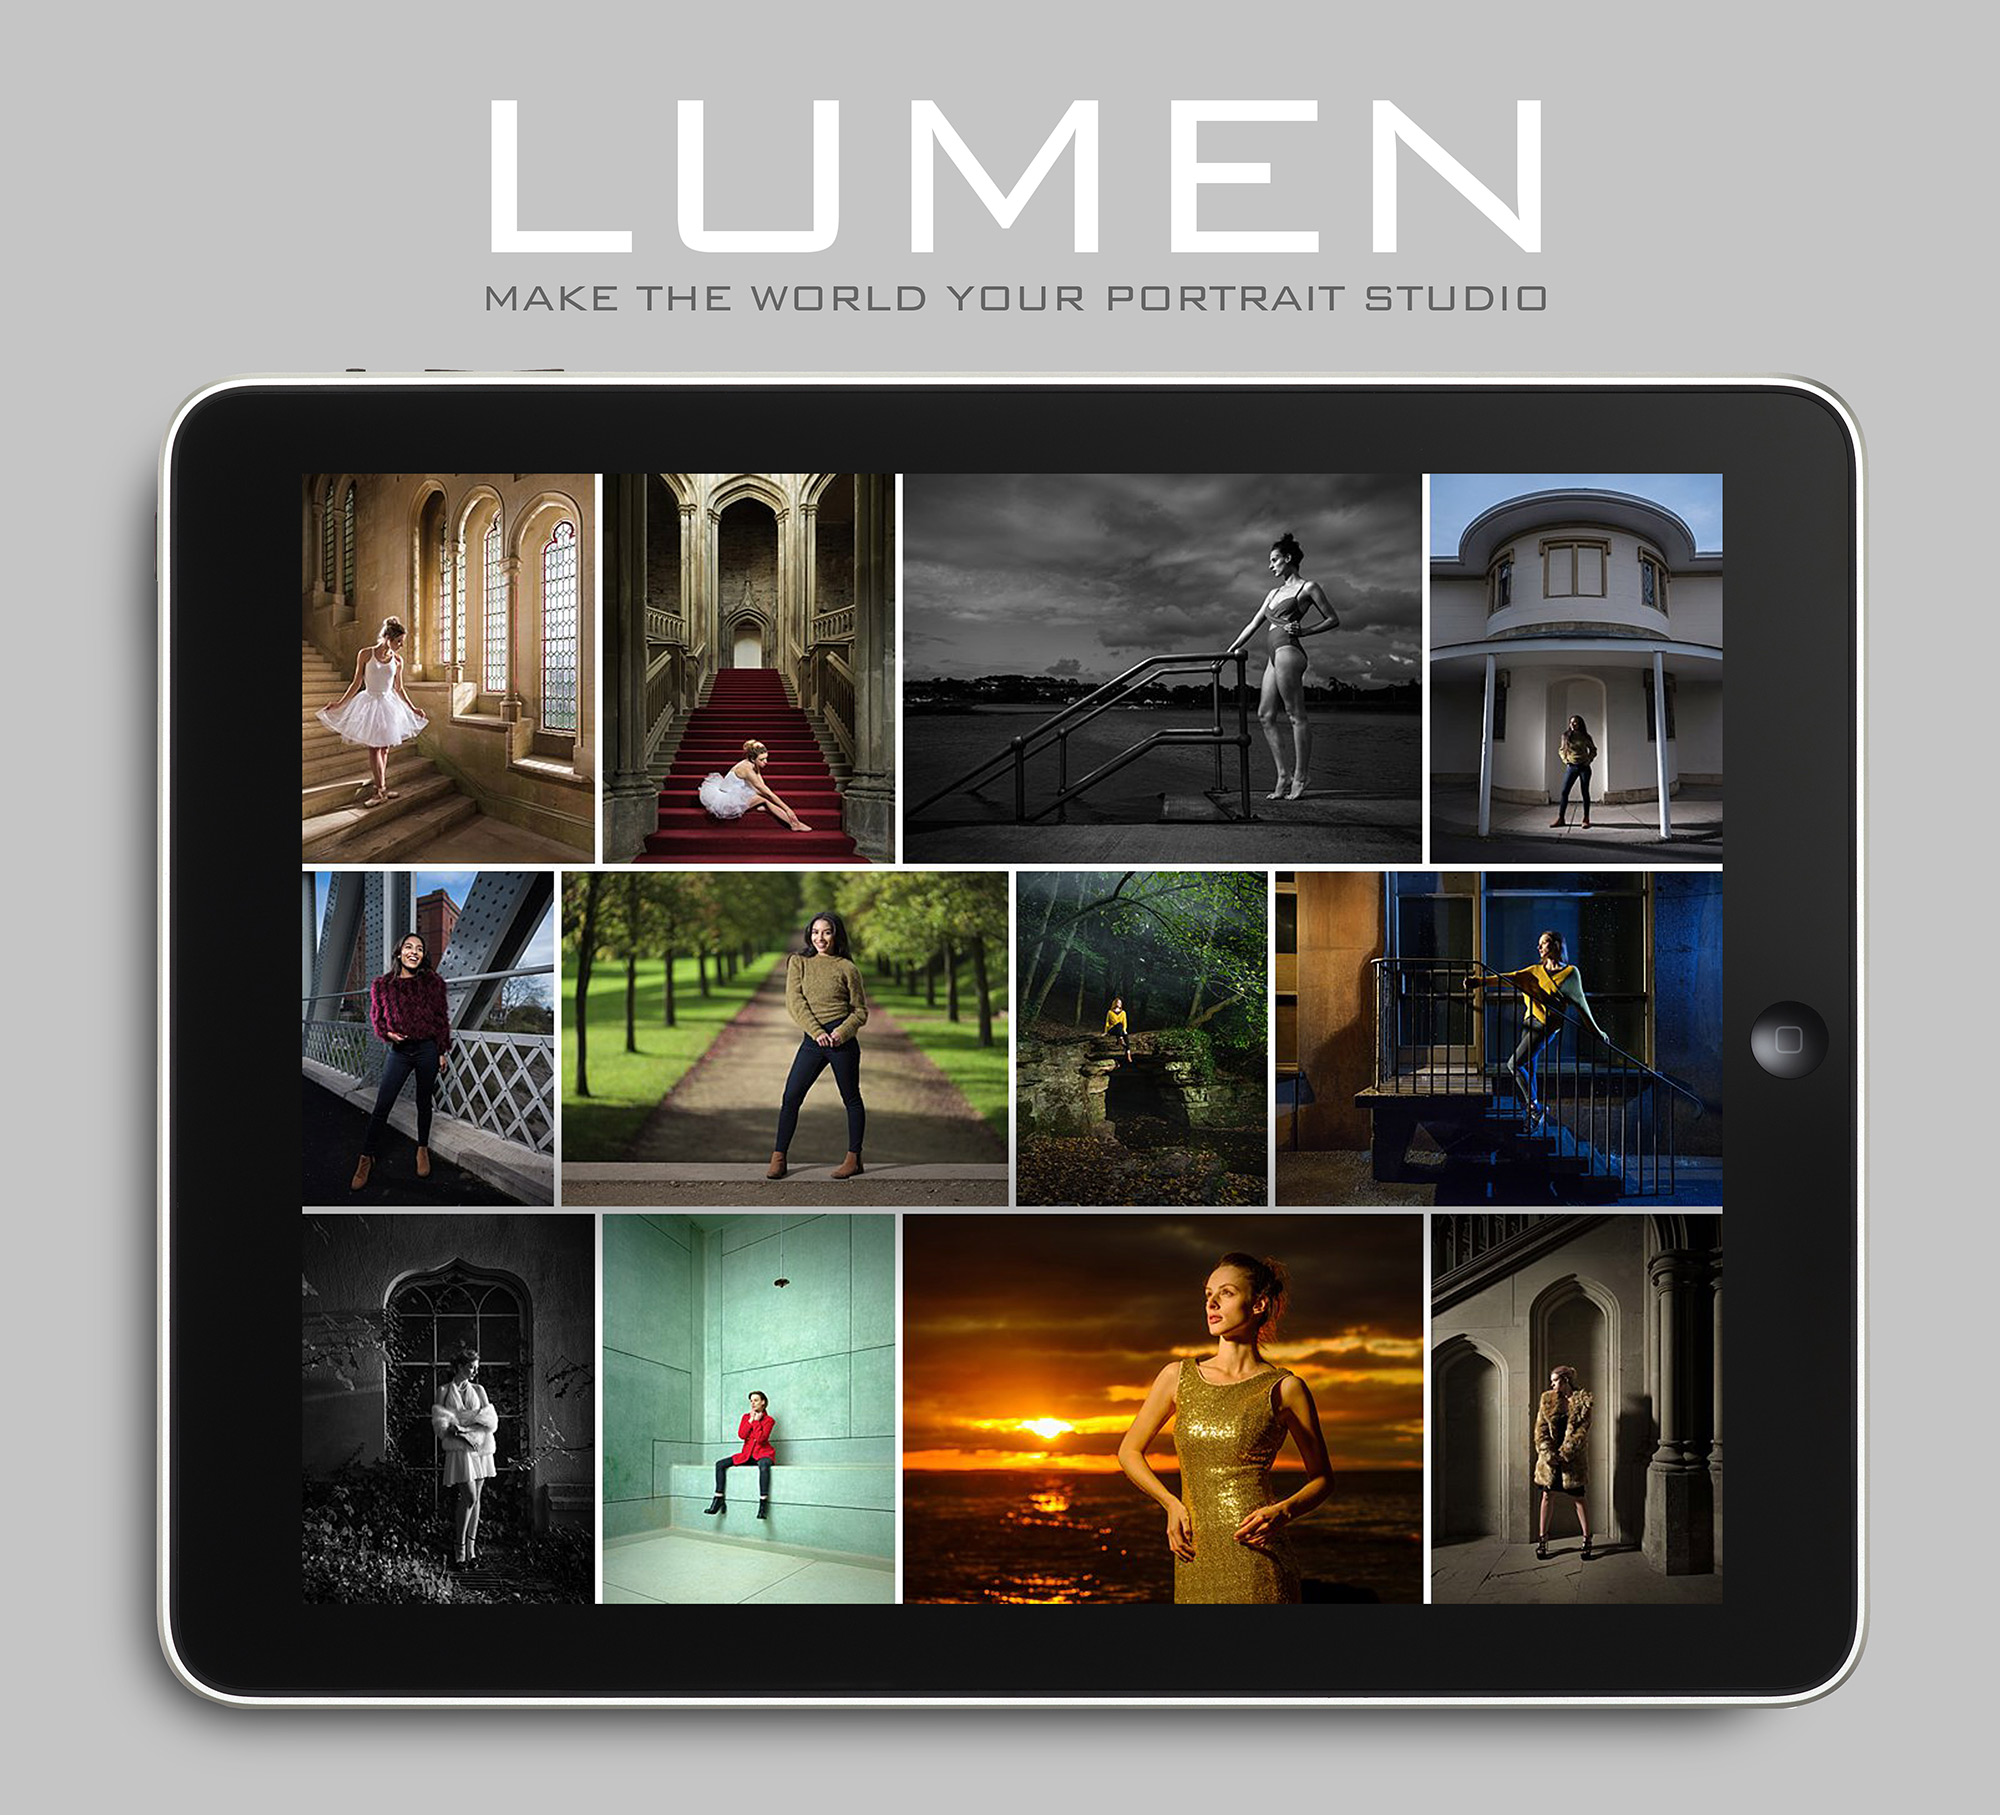 LUMEN ~ The new video by Damien Lovegrove